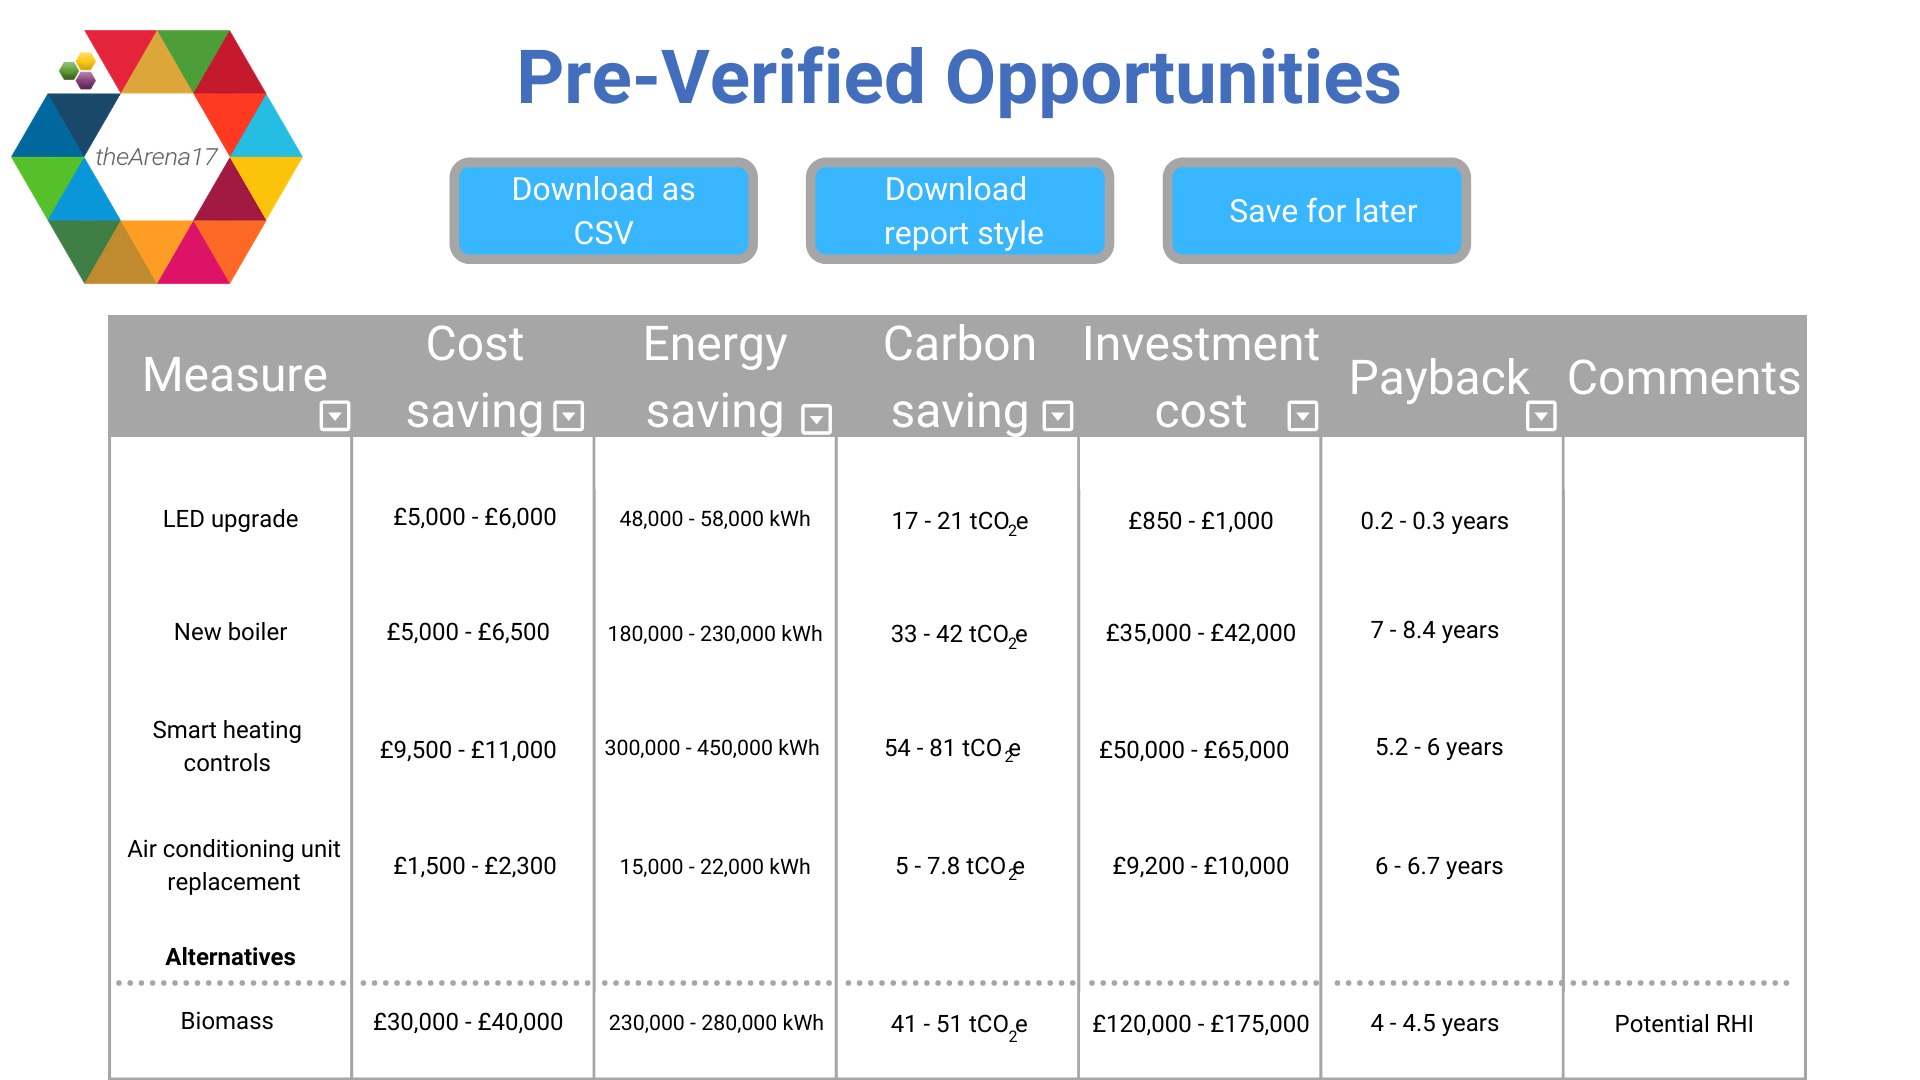 Image showing you pre-verified opportunities and their savings, including things like smart heating controls or a new boiler